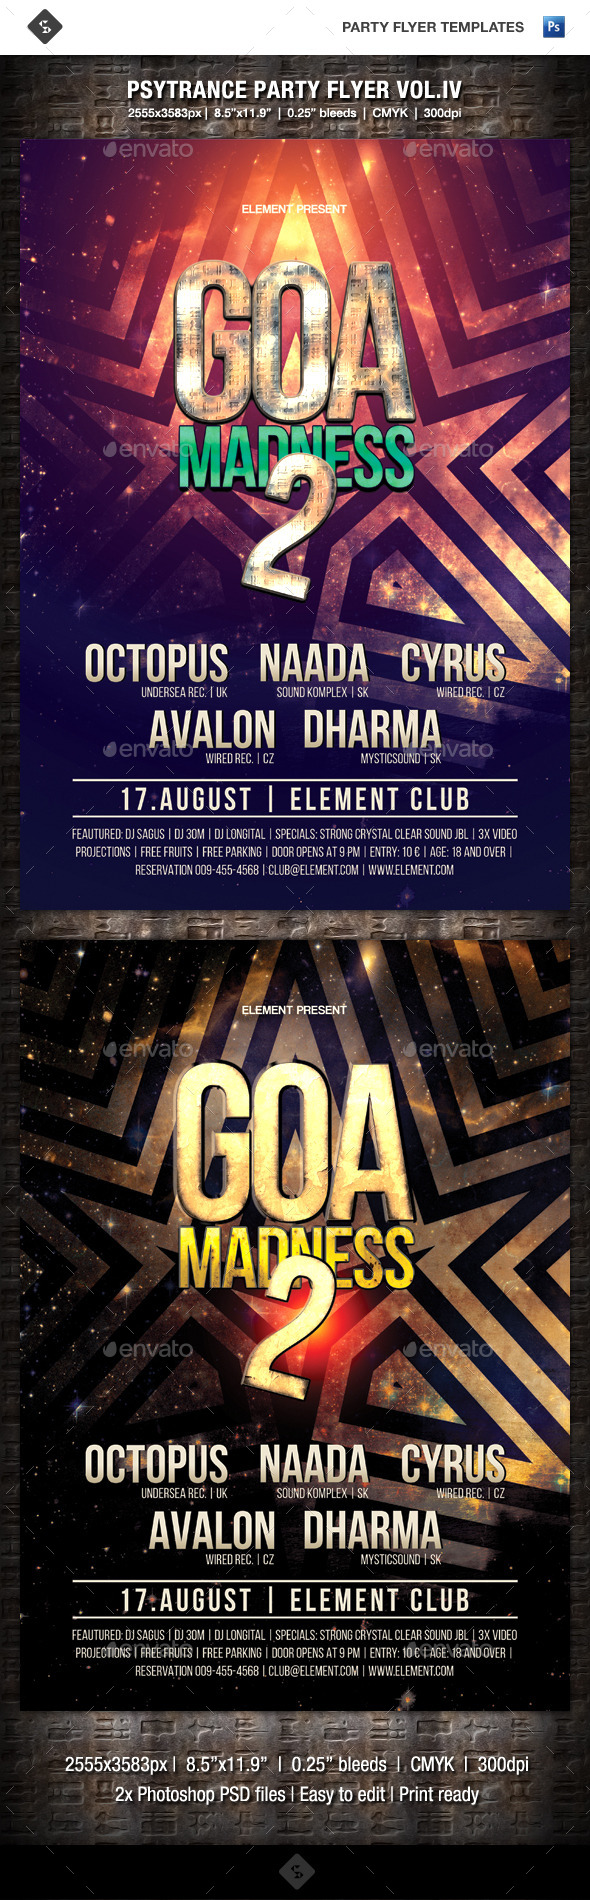 GraphicRiver Psytrance Party Flyer Vol.4 Goa Madness 2 9808993